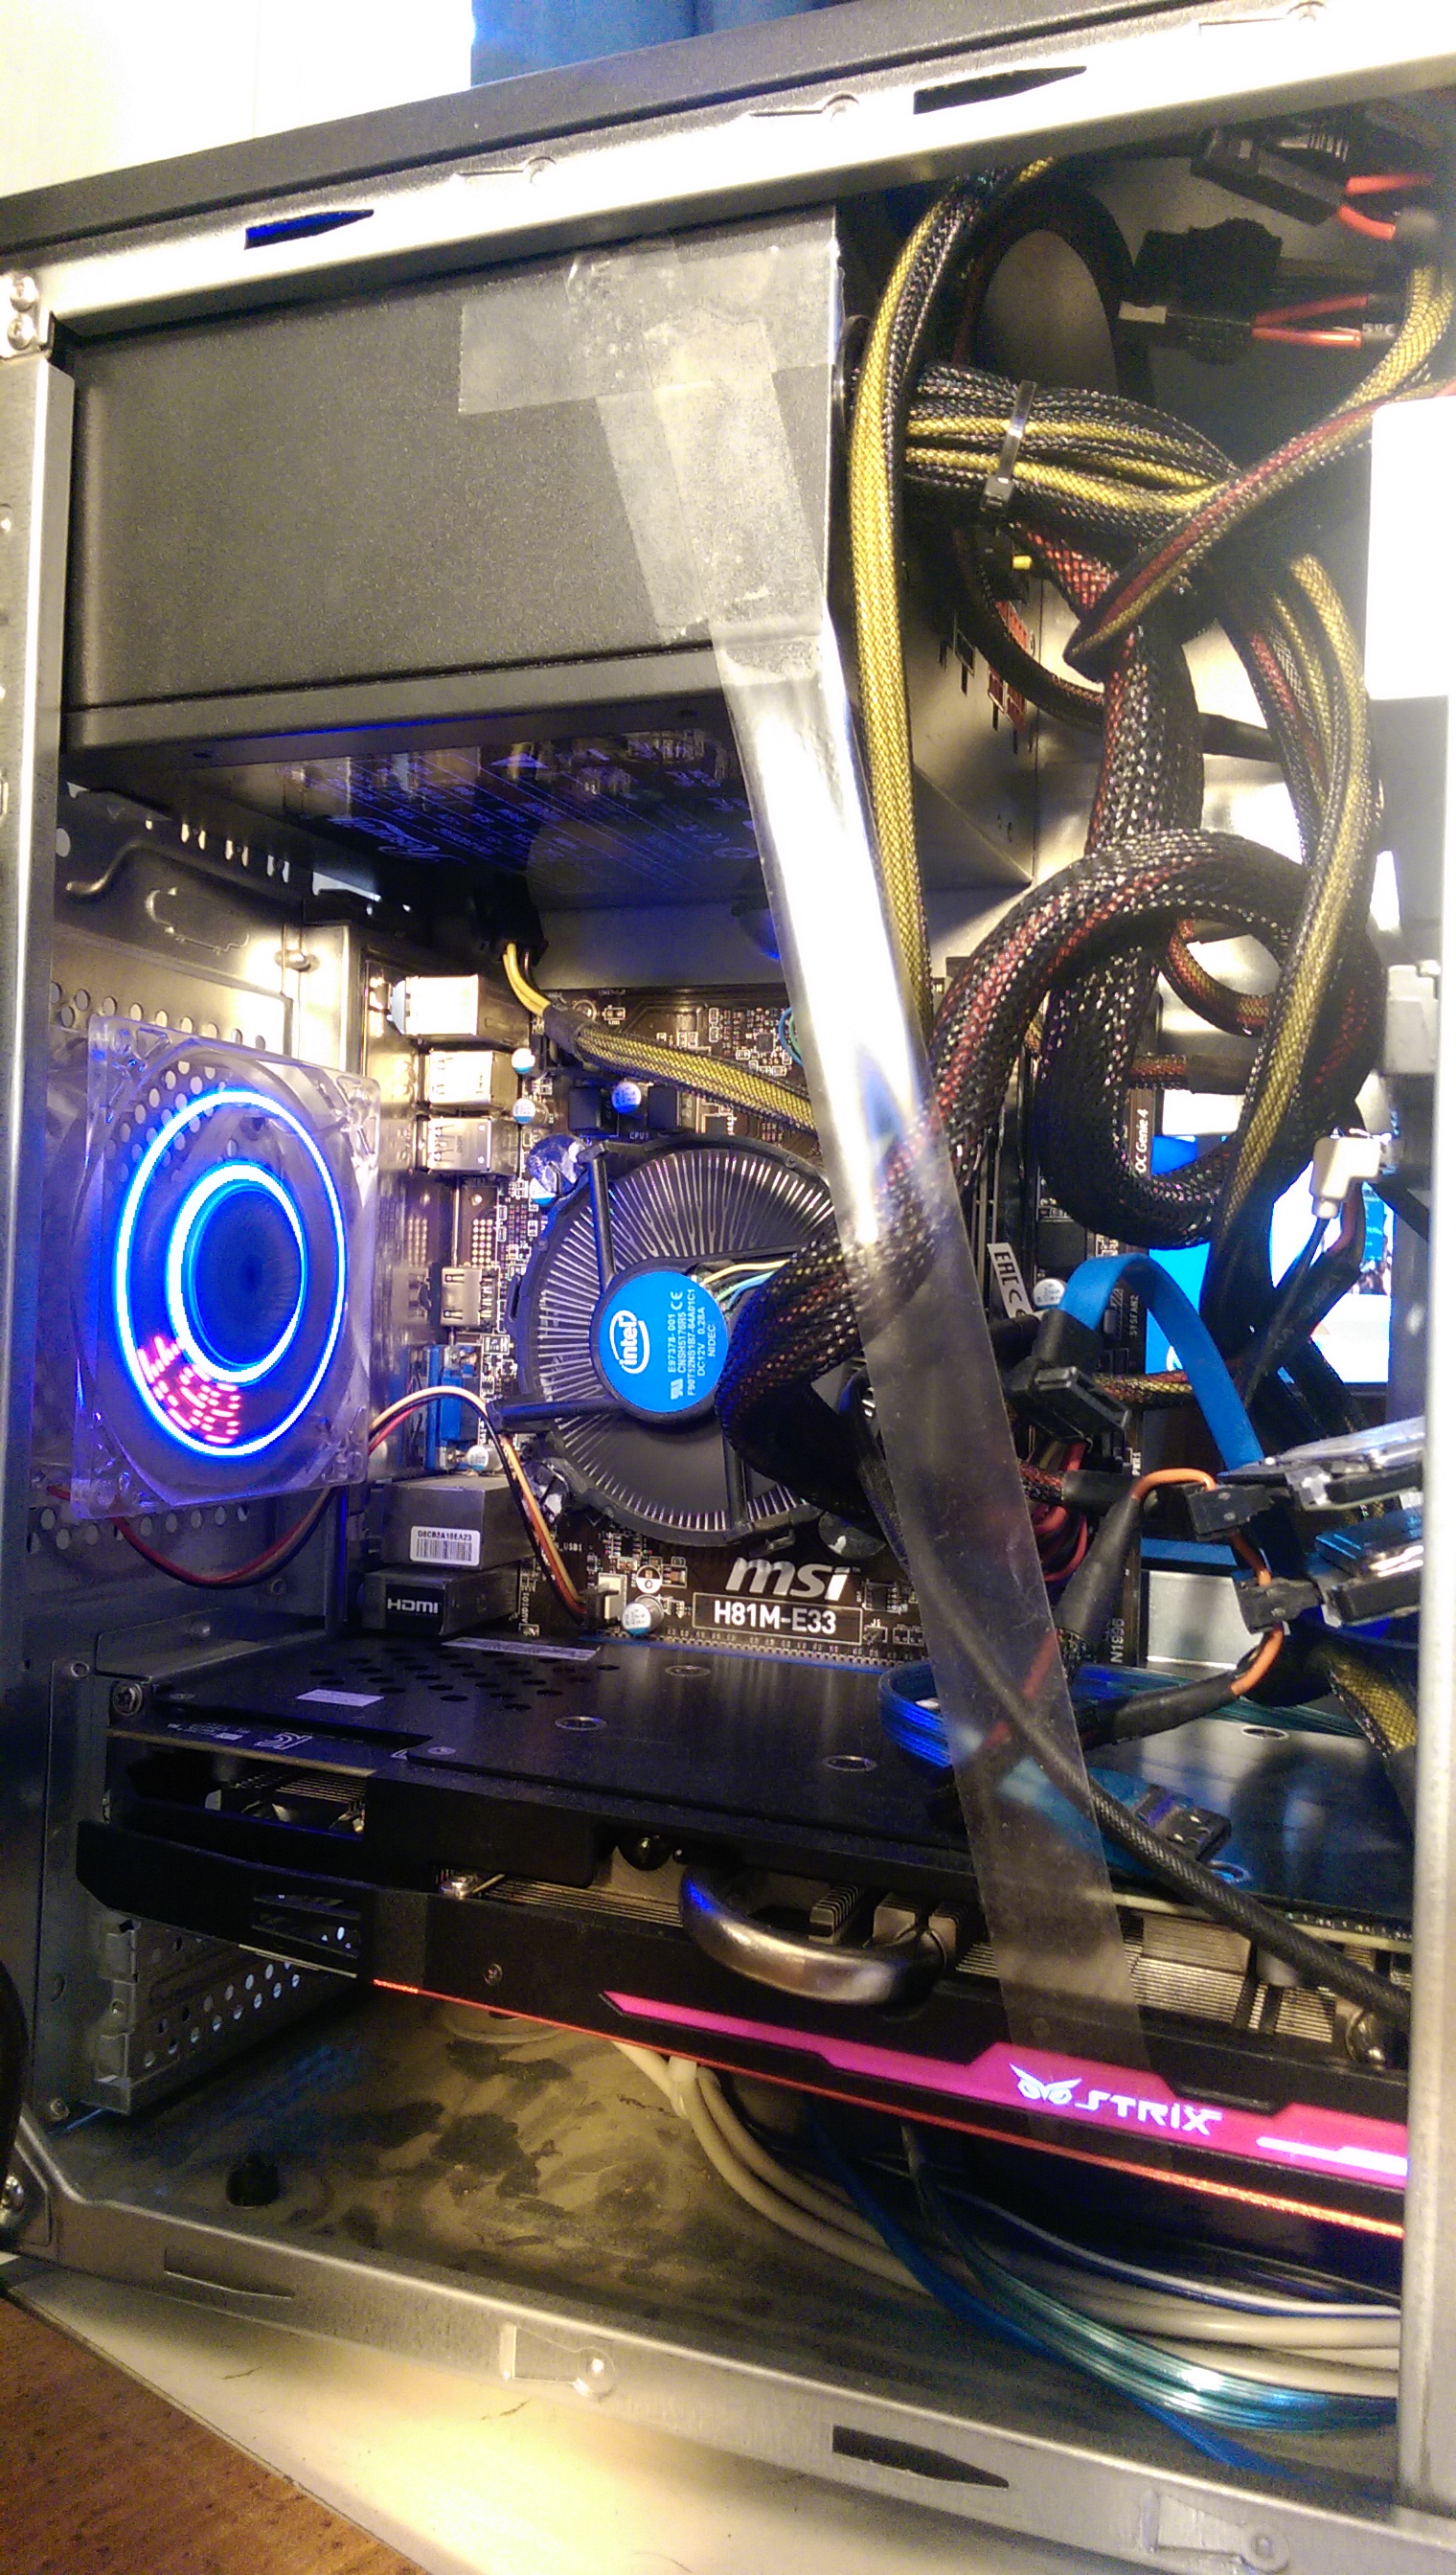 Lol, I know somebody is going to have something to say about the tape, but I'd rather it look n***er rigged than have that 390x hanging with no support and torquing my MoBo. When I finish the build this will be remedied.